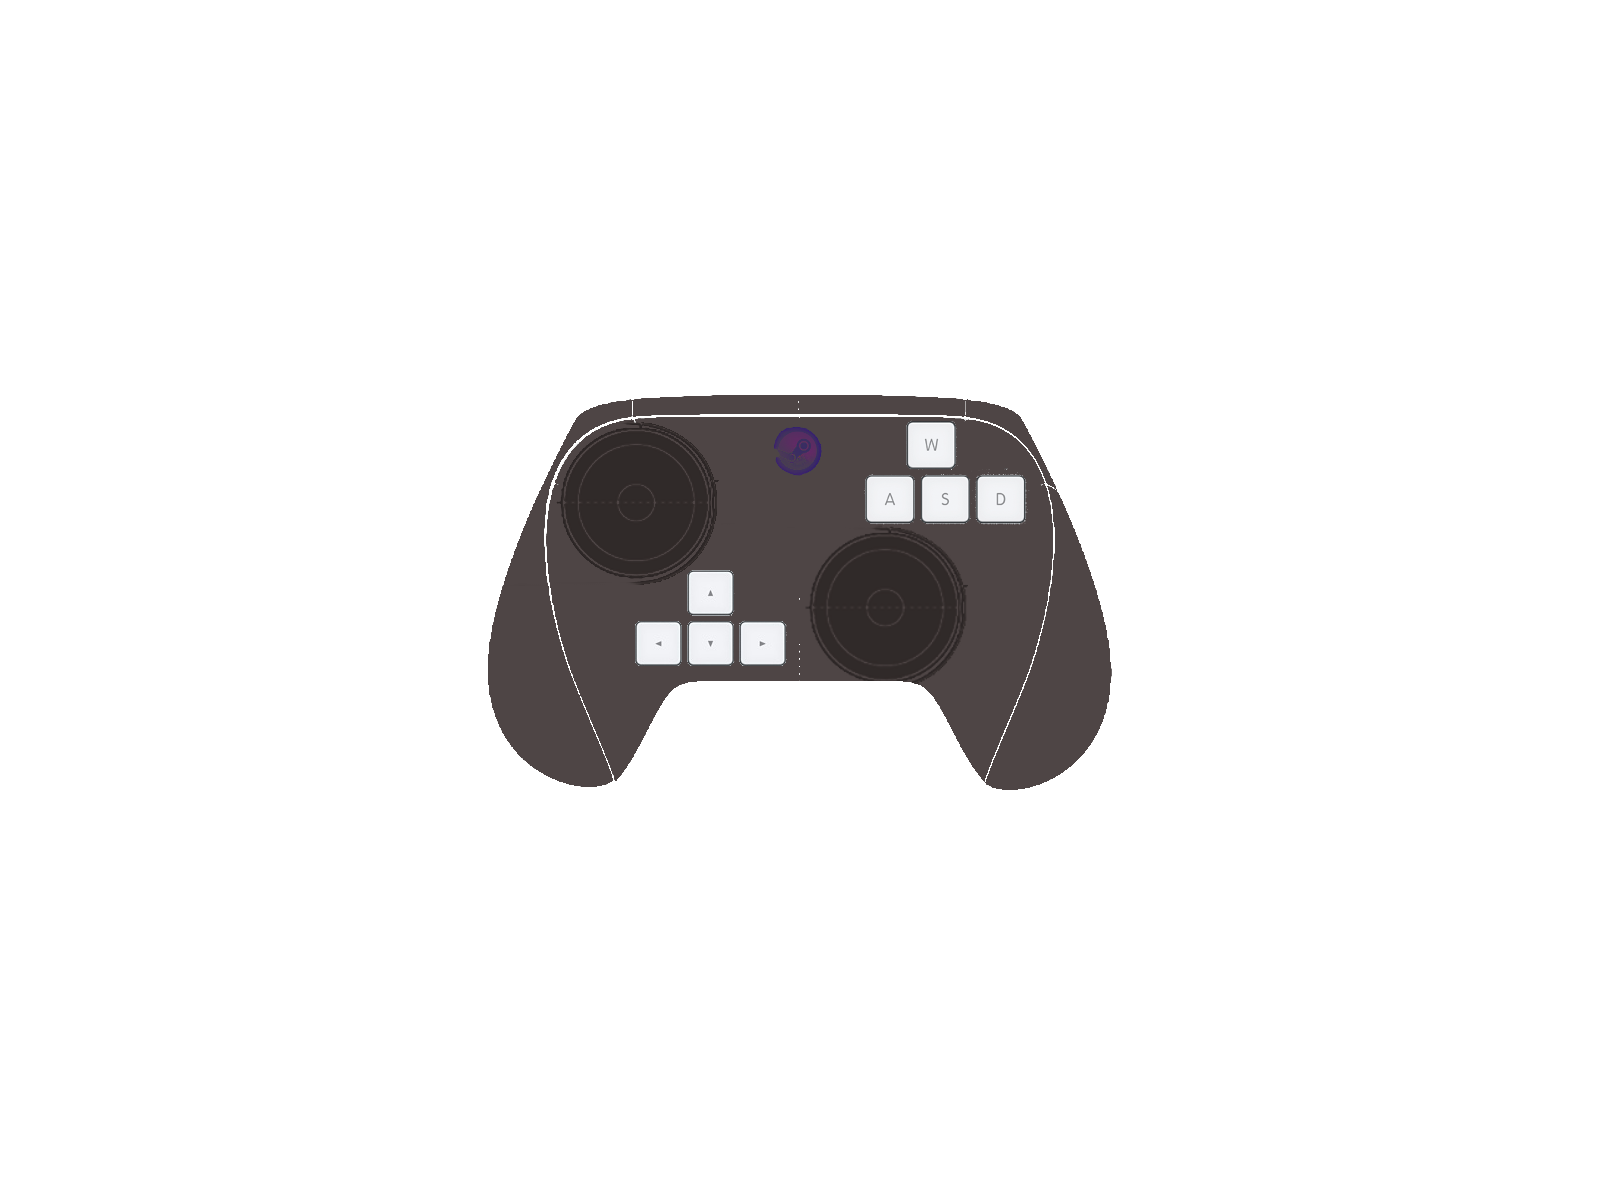 manette-steam1